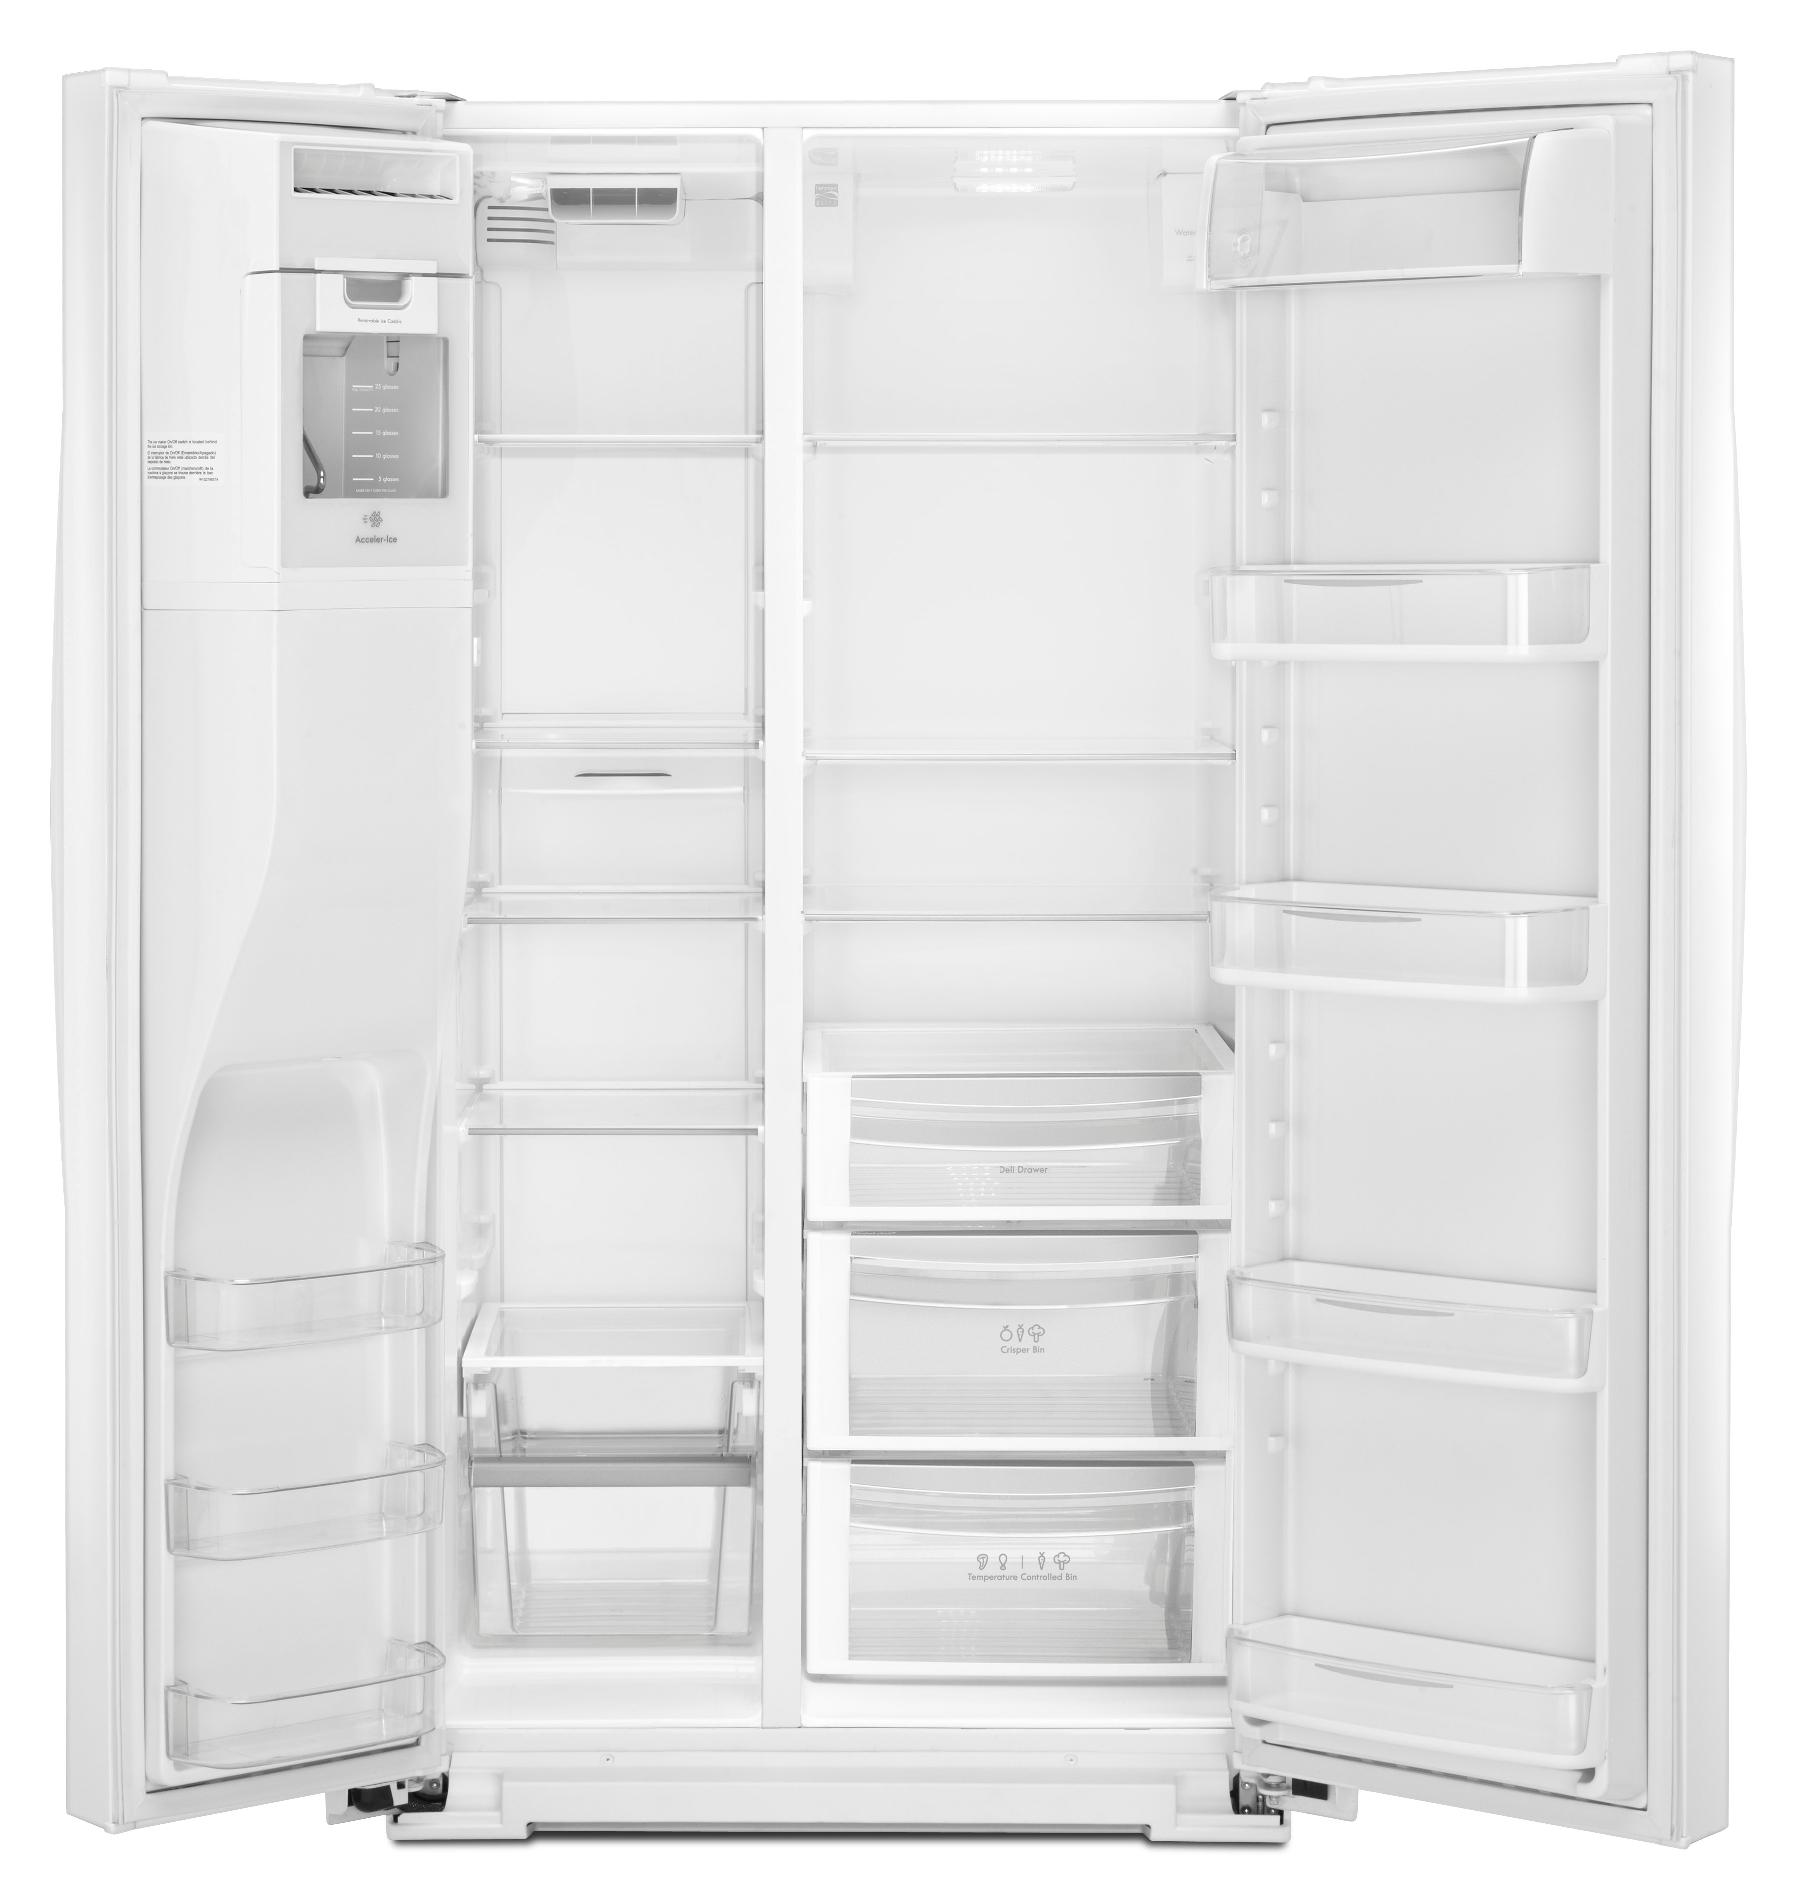 Kenmore Elite 26 cu. ft. Side-by-Side Refrigerator - White